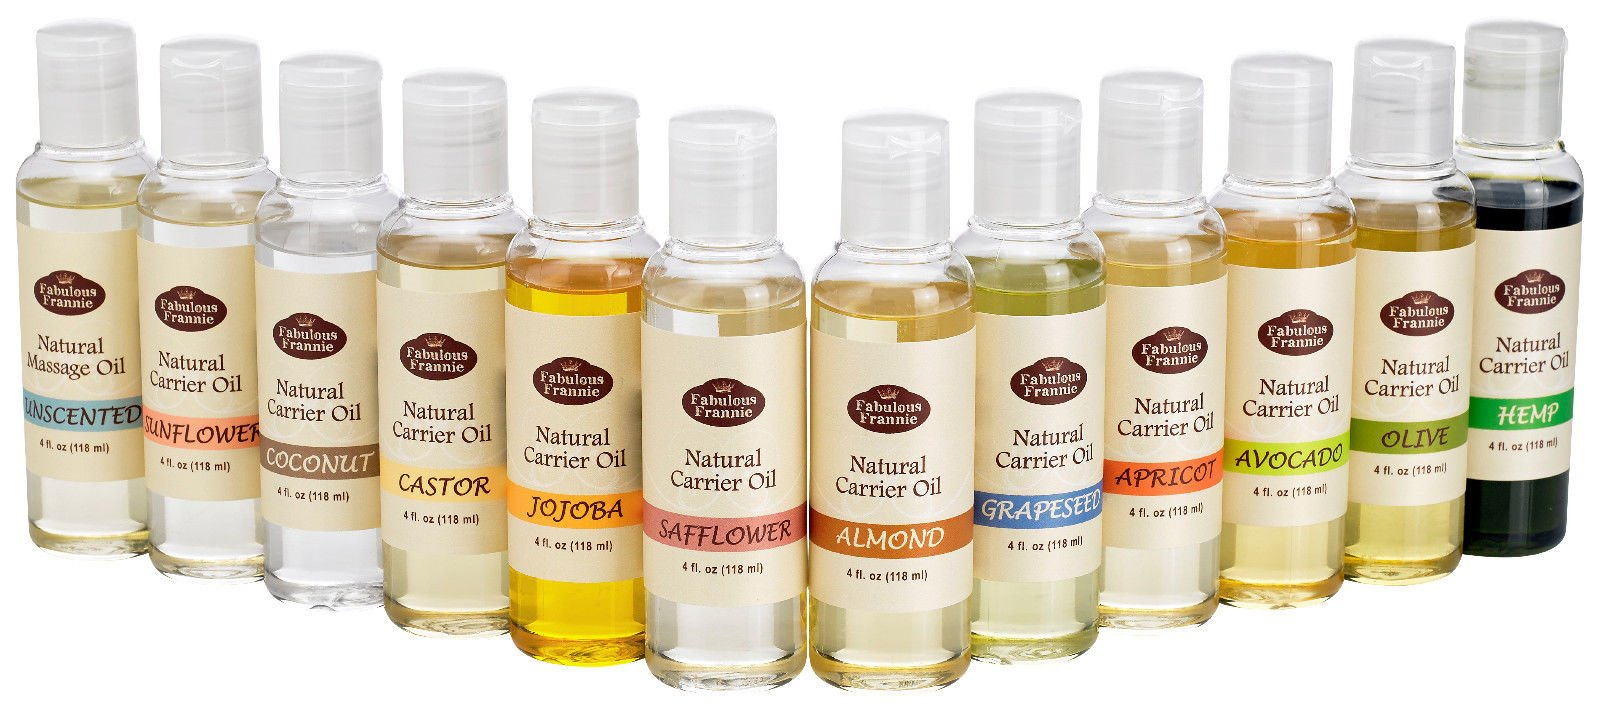 100% Pure Carrier Oil VARIETY 12/4oz Bottles Apricot Kernal, Avocado, Castor, Coconut, Grapeseed, Hemp Oil, Jojoba, Olive, Safflower, Sunflower, Sweet Almond, Unscented Massage Oil by Fabulous Frannie by Fabulous Frannie